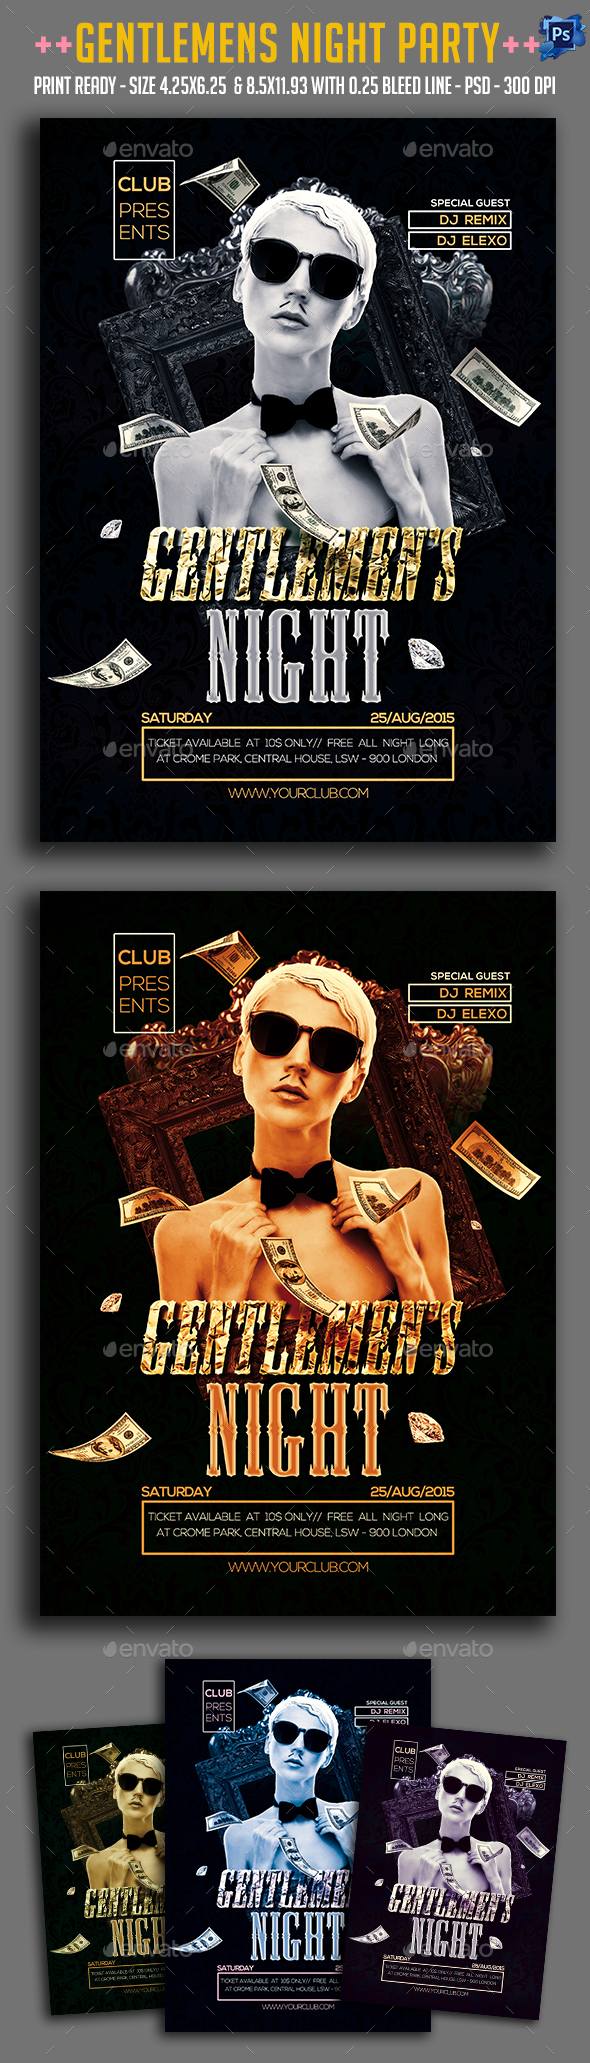 Gentlemen's Night Party Flyer - Clubs & Parties Events